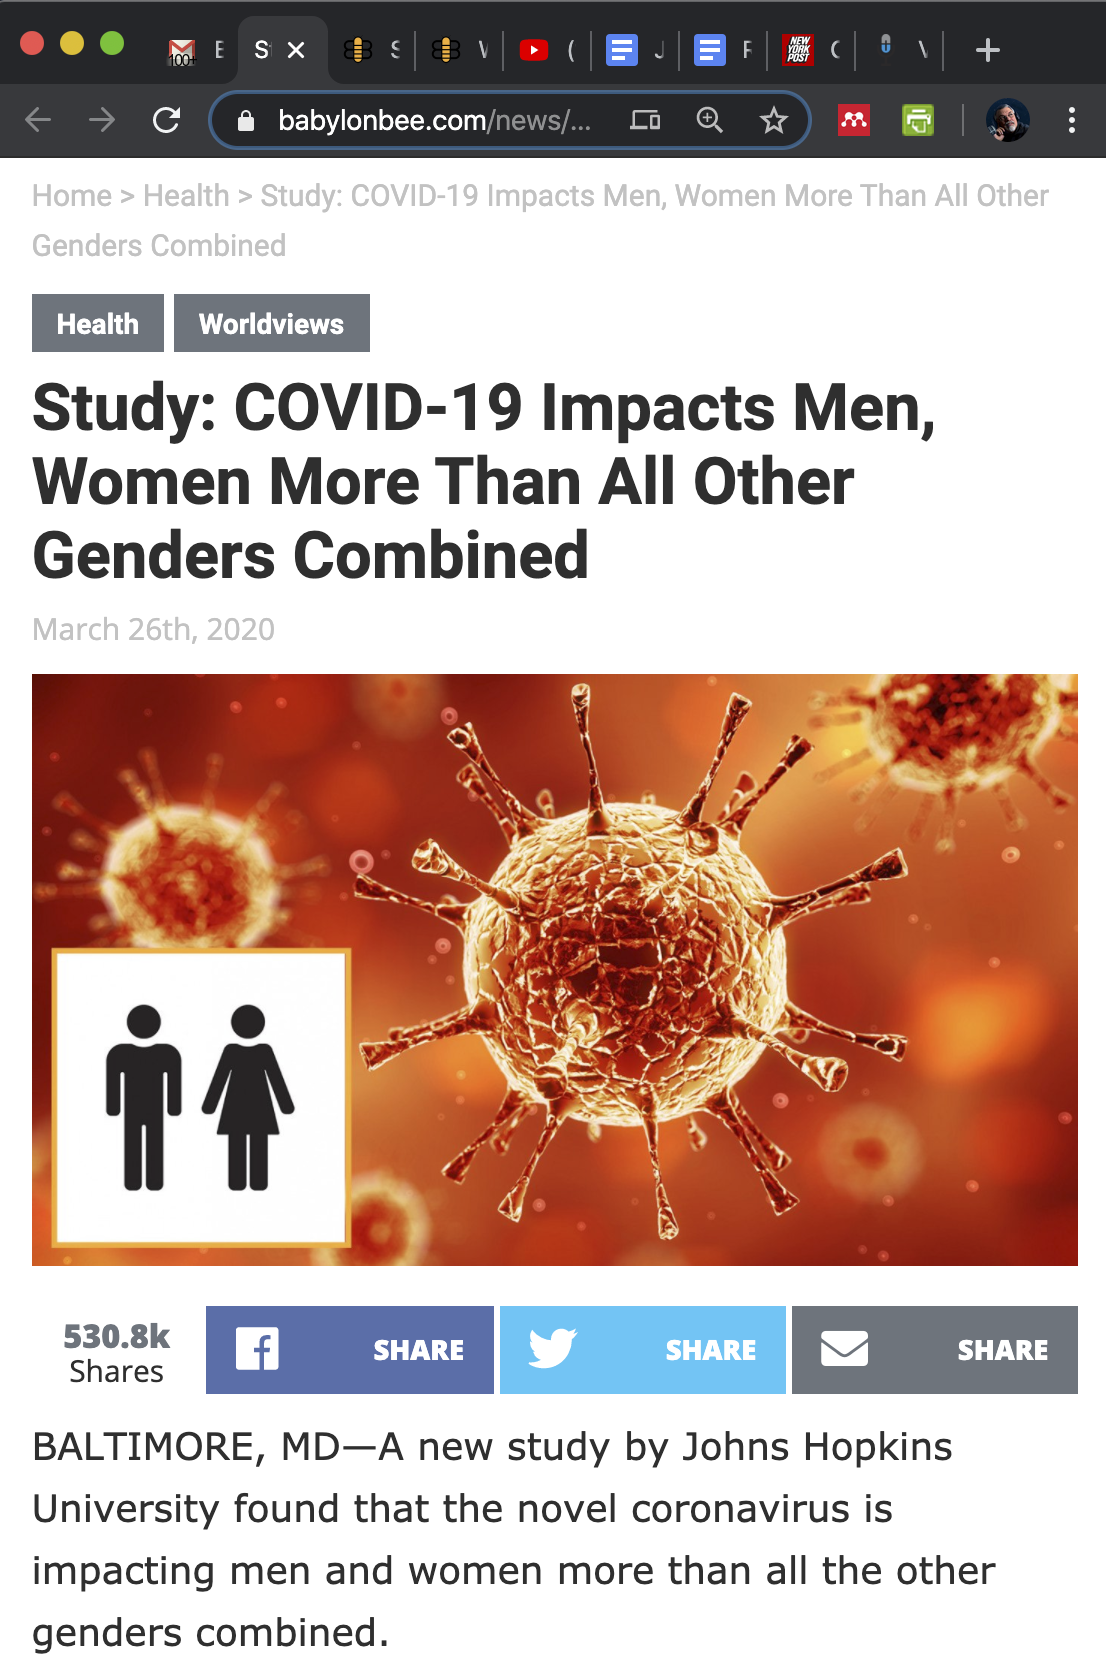 Babylon Bee: Coronavirus impacts men, women more than all other genders combined